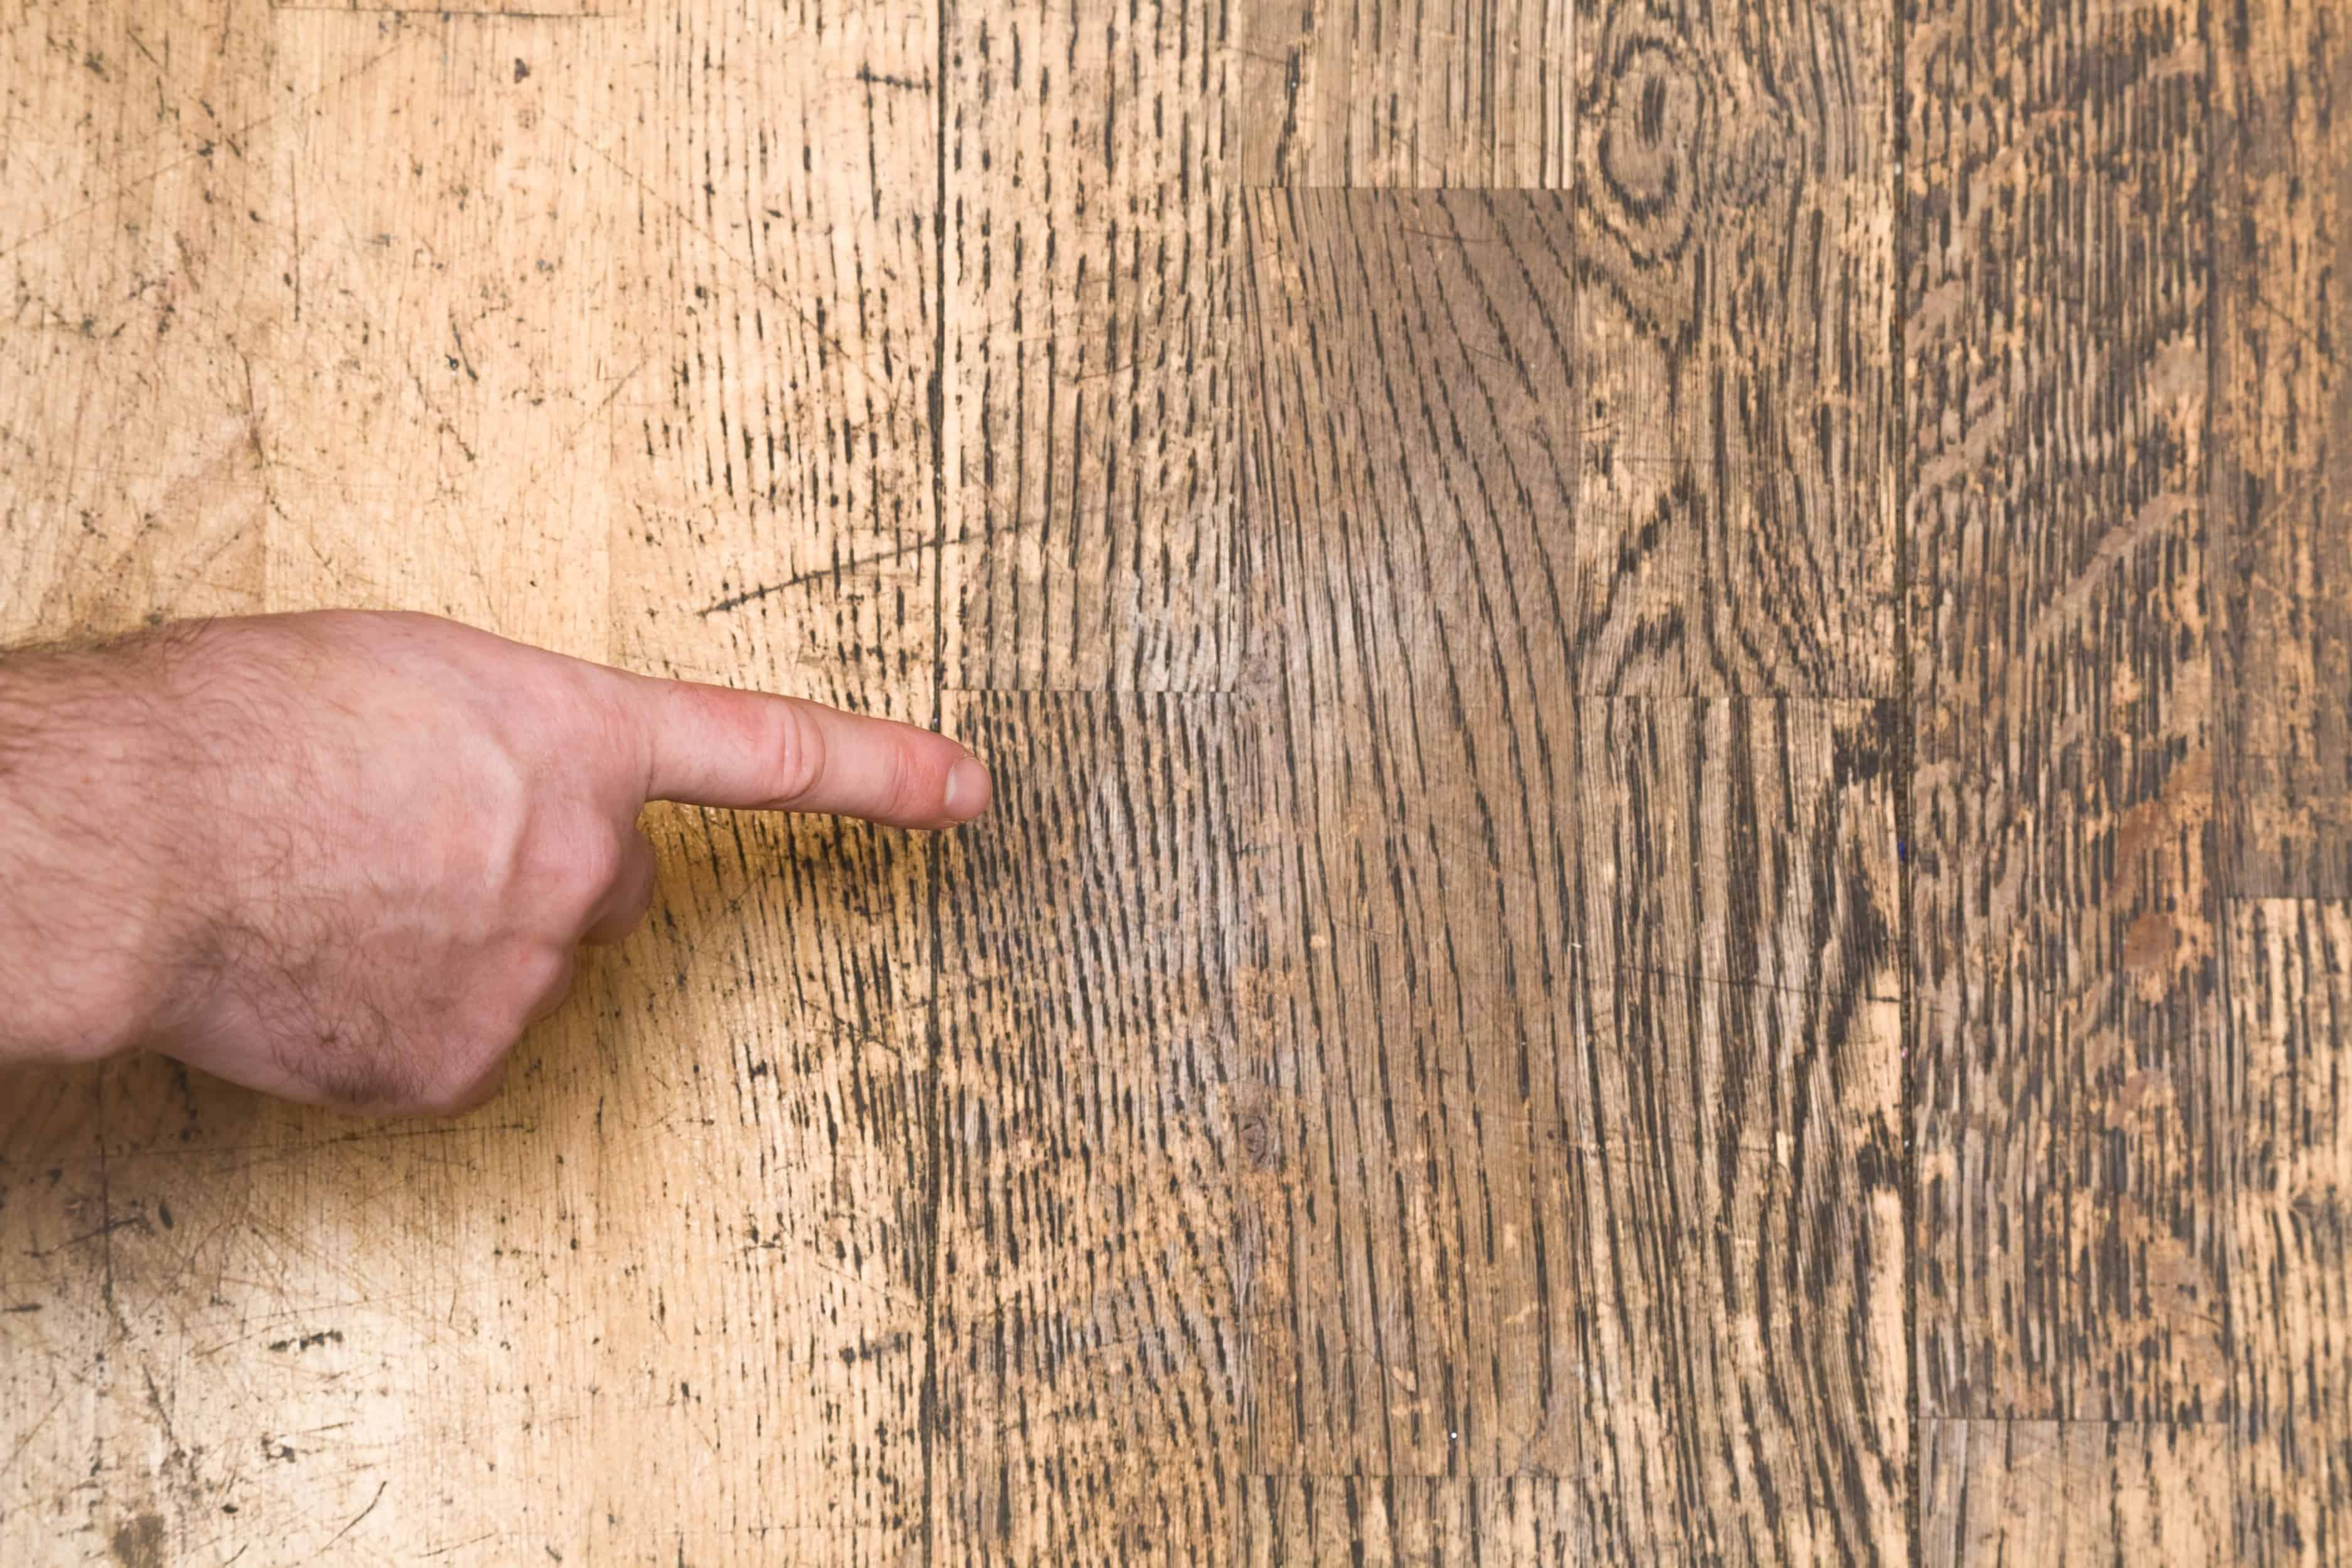 Hardwood Flooring Dents And Scratches Causes And Fixes Denver